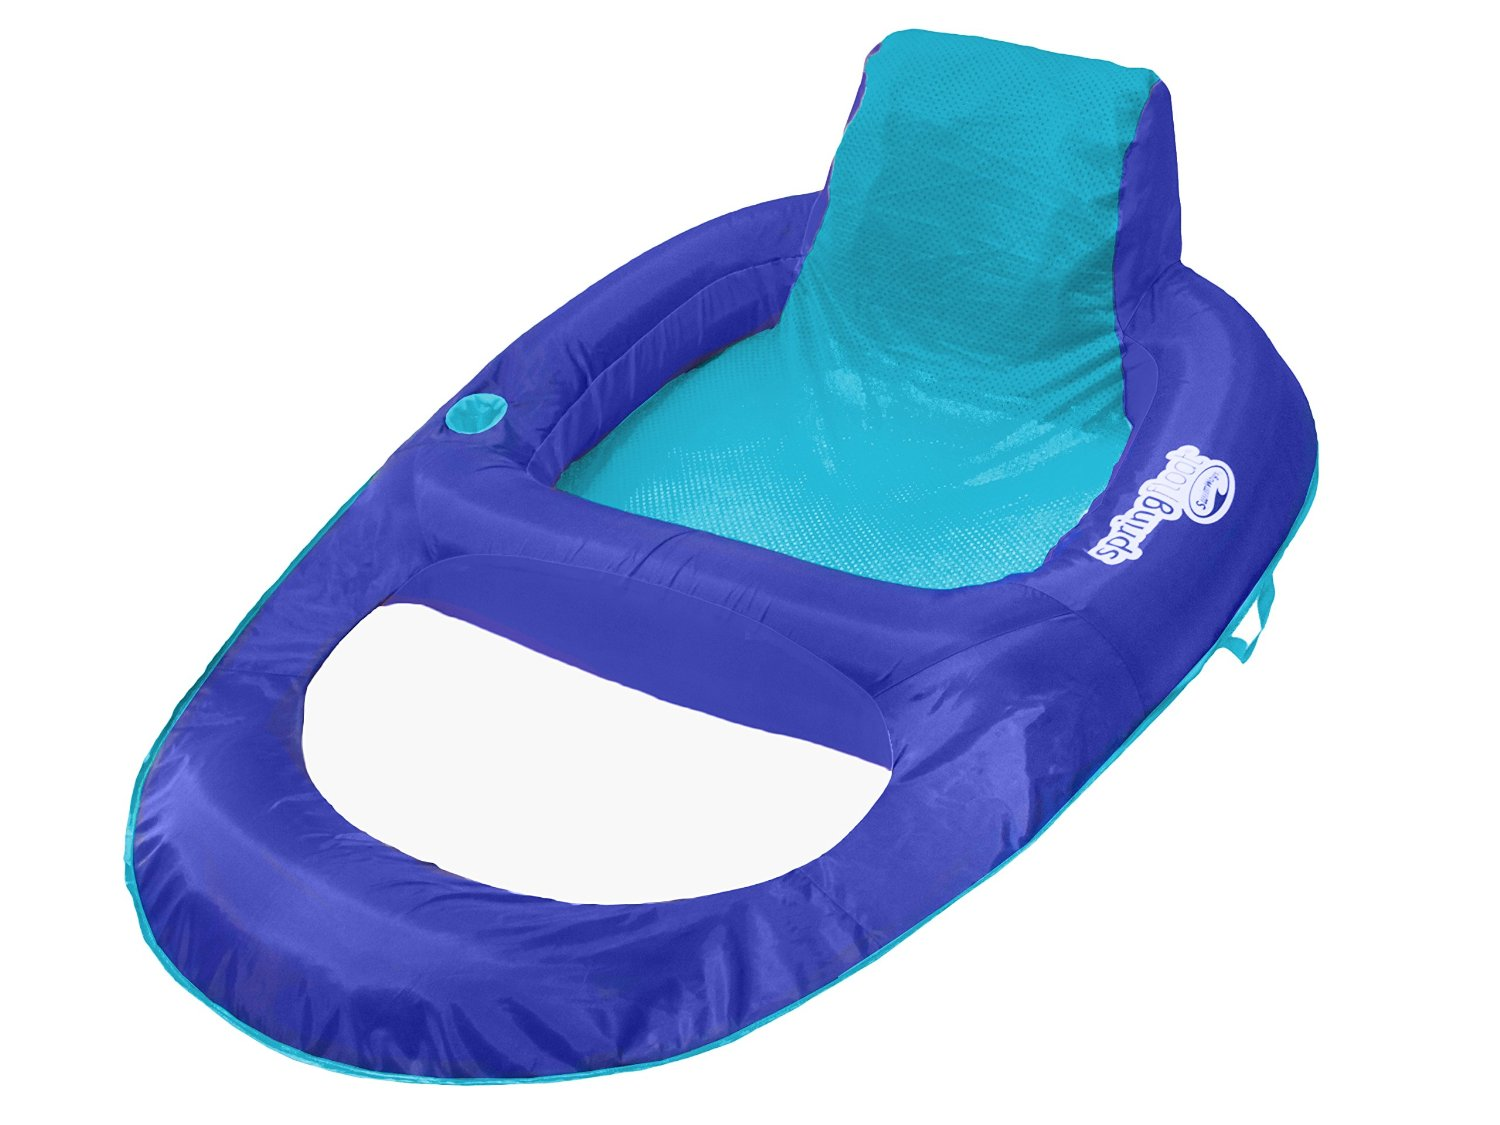 10 Best Swimming Pool Loungers 2018 Top Floating Pool